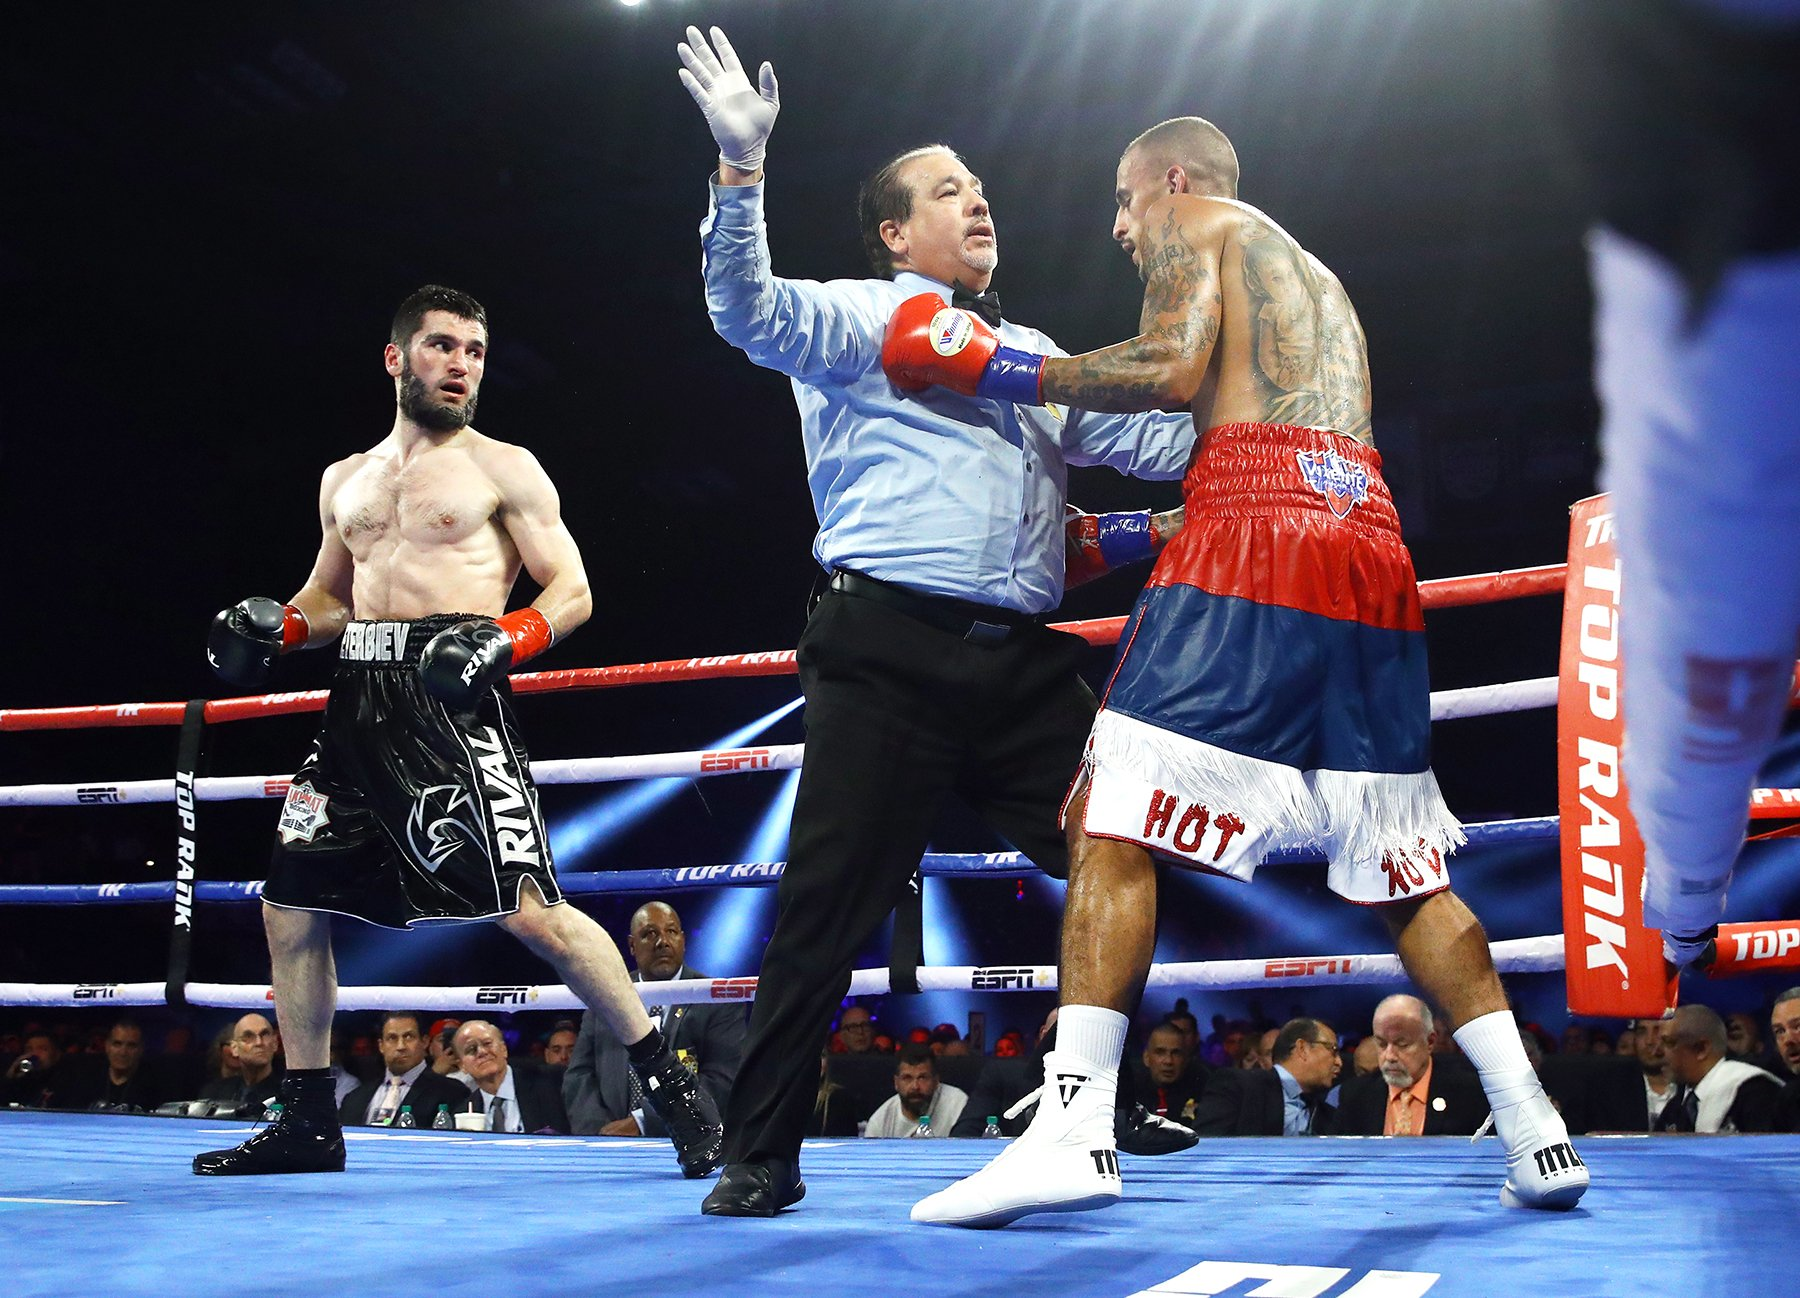 Artur Beterbiev (left) vs. Radivoje Kalajdzic. Photo by Mikey Williams/Top Rank